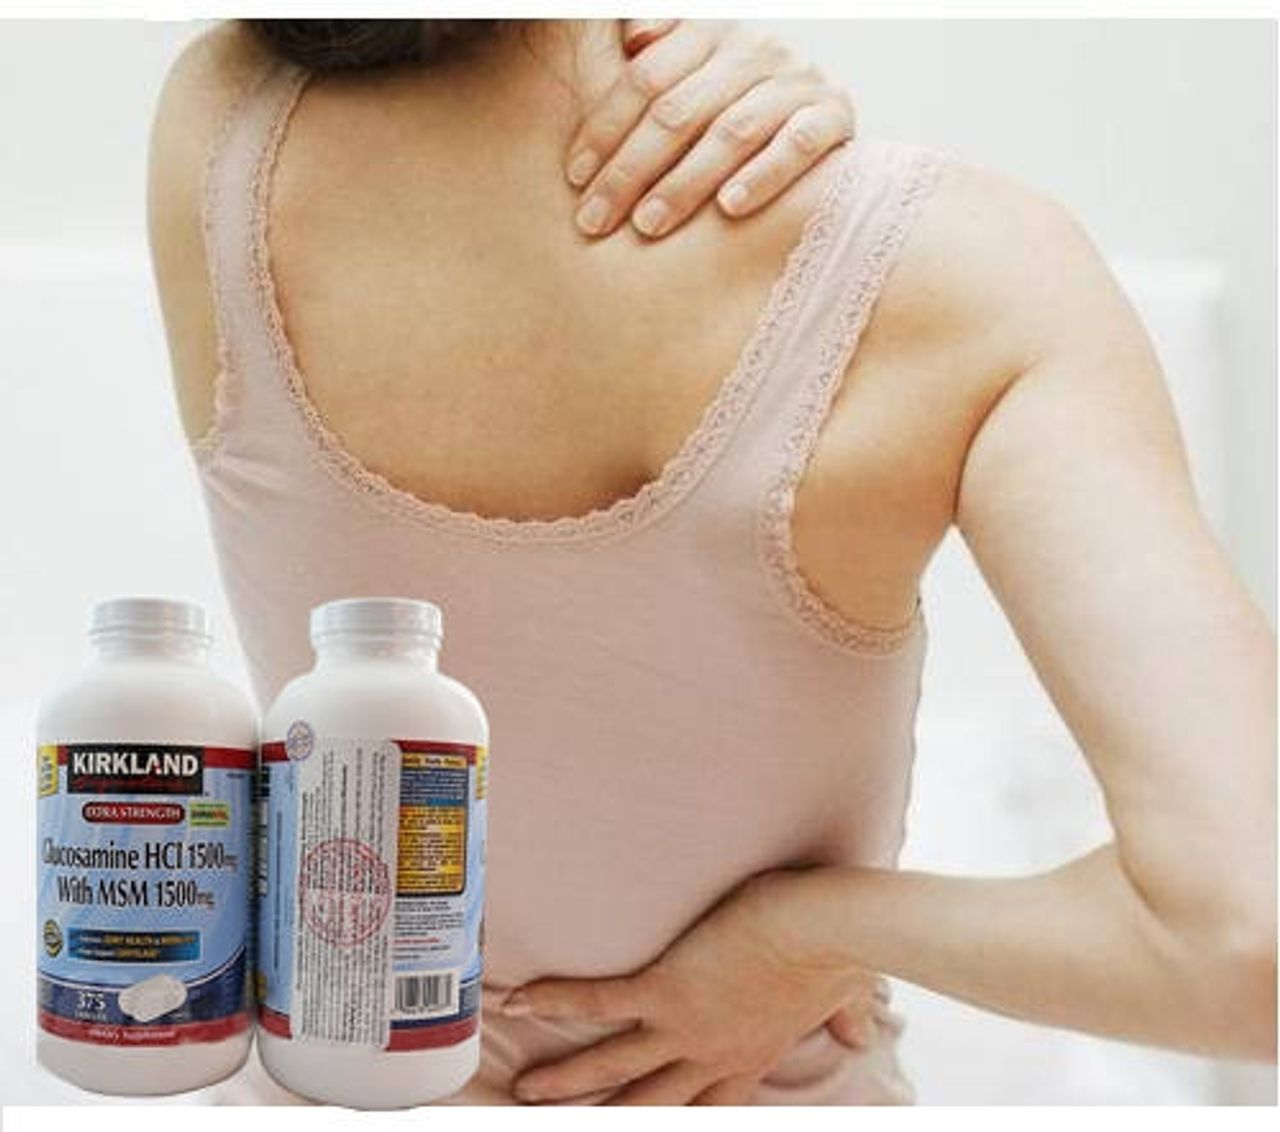 Glucosamine Msm 1500 Photo Trend Ideas Kirkland Signature Extra Strength Hci 1500mg With Hcl 375 Vin Gi S Bn Bun